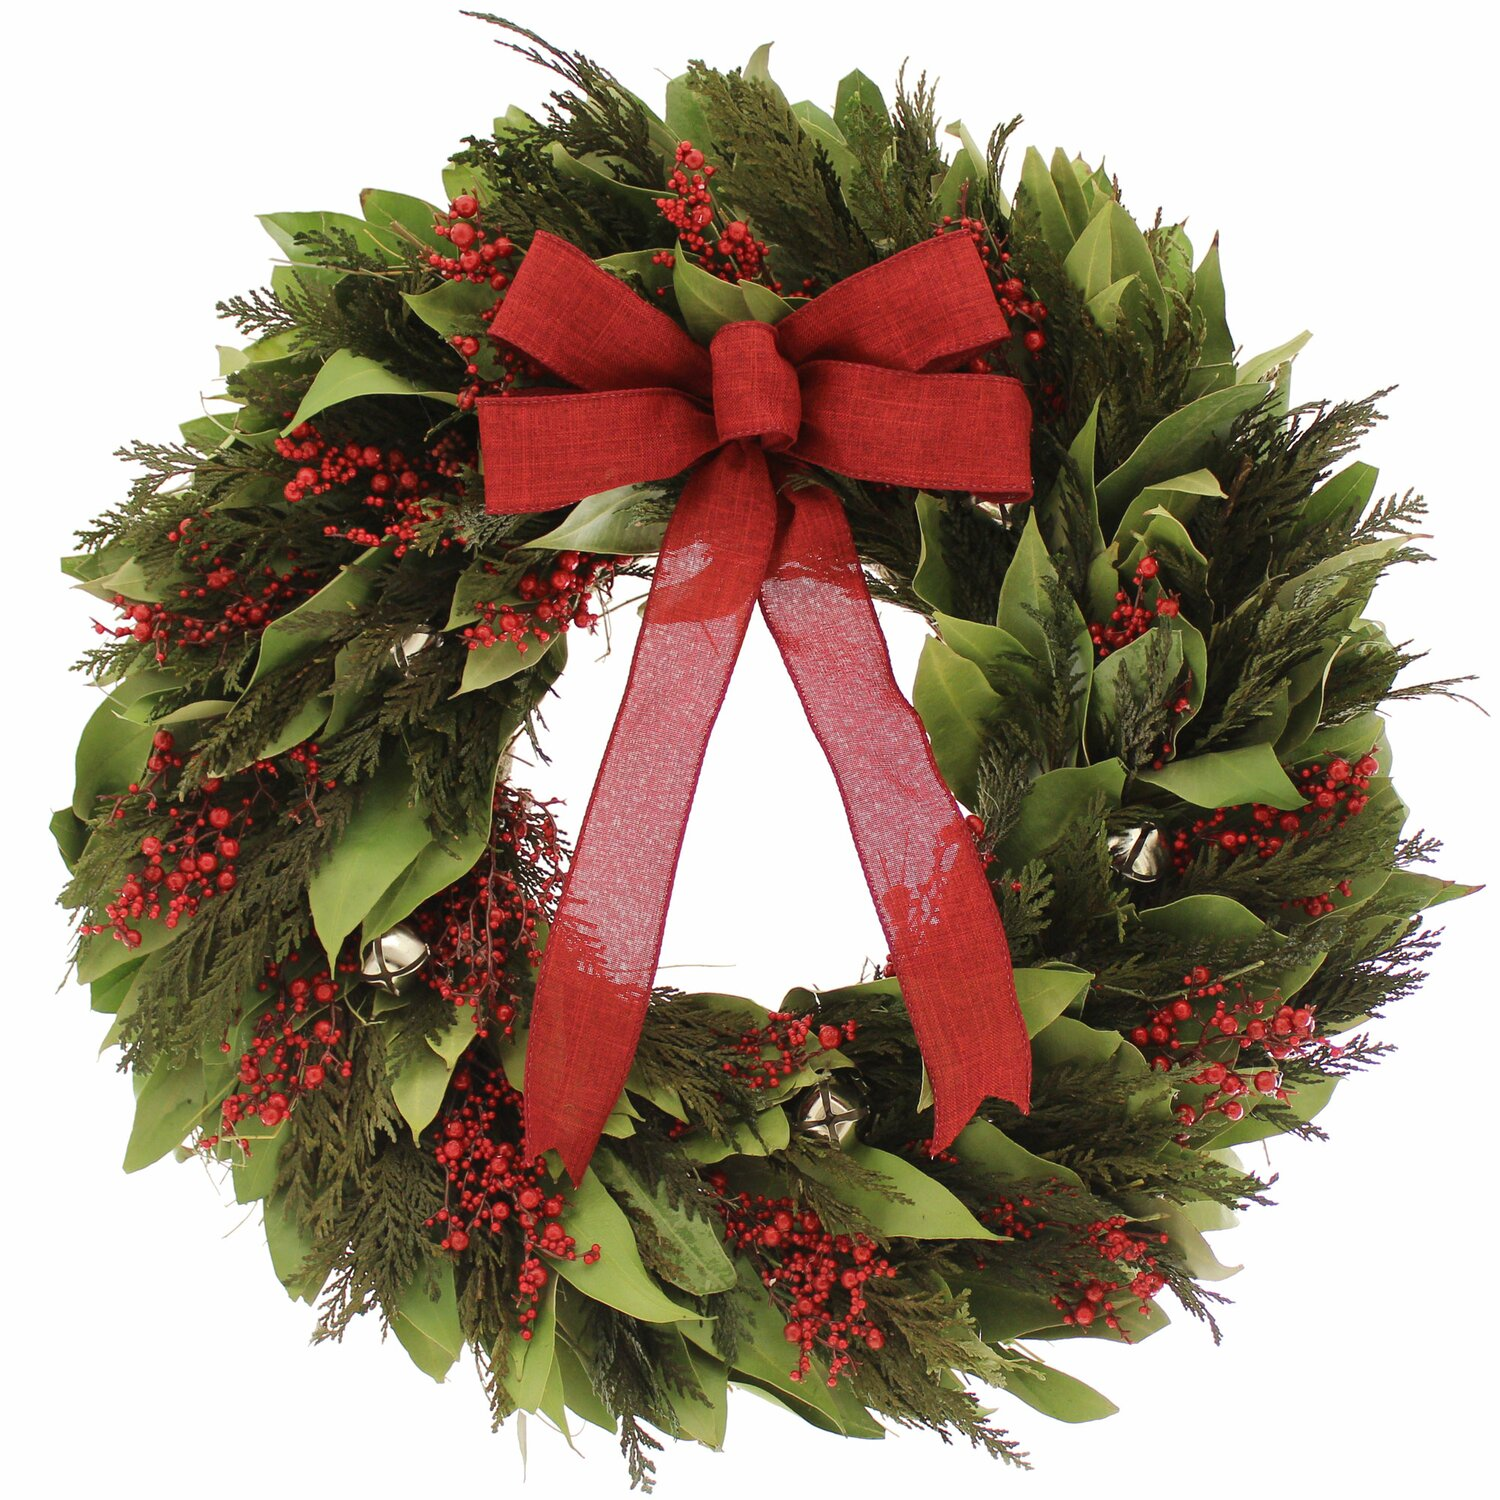 18 Inch Jingle Bell Preserved Wreath  Natural Leaves  Green Cedar Red Berries  Natural Twig Base